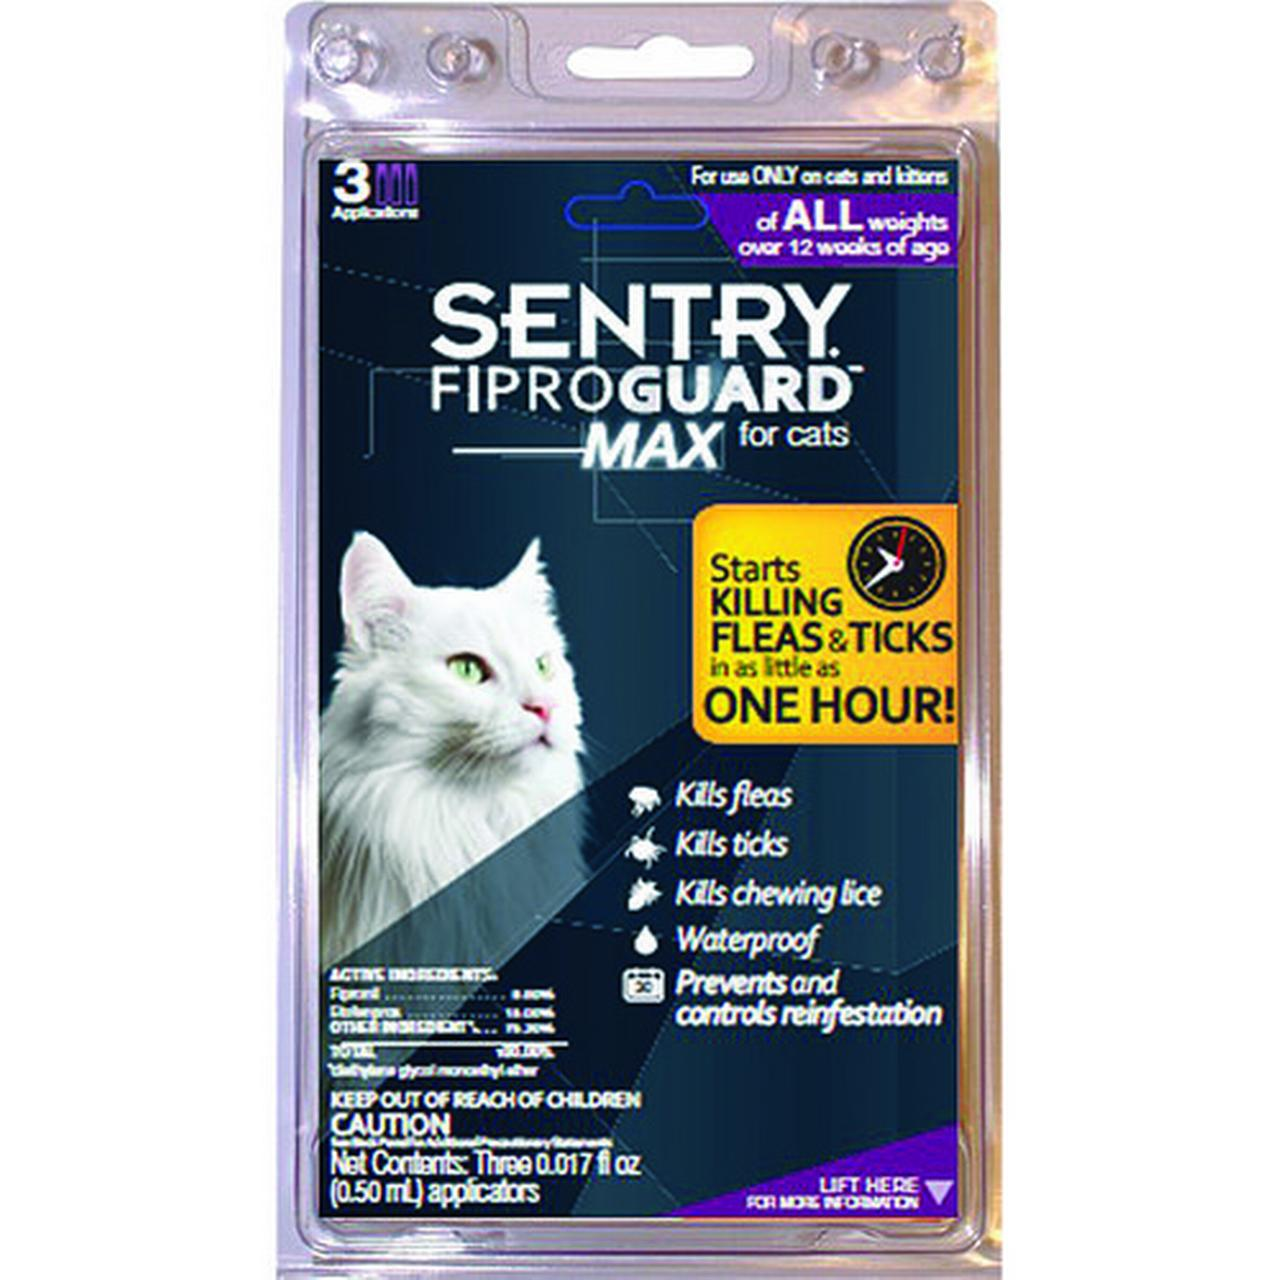 Sentry Fiproguard Max for Cats All Weights Over 12 Weeks Old Multi-Colored